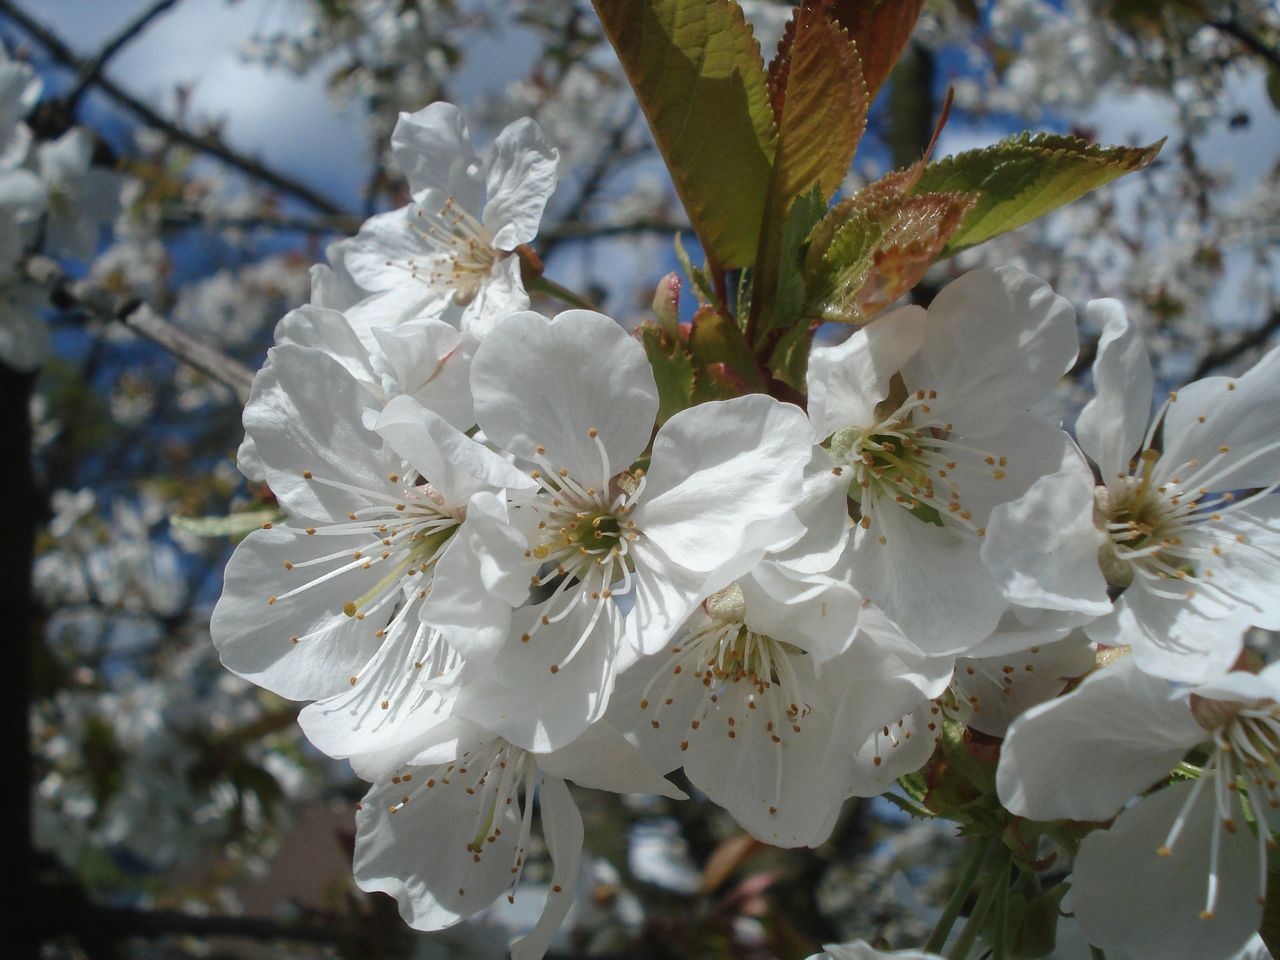 flower, white color, fragility, blossom, beauty in nature, growth, petal, nature, botany, springtime, apple blossom, tree, freshness, branch, stamen, flower head, close-up, orchard, no people, day, pollen, outdoors, blooming